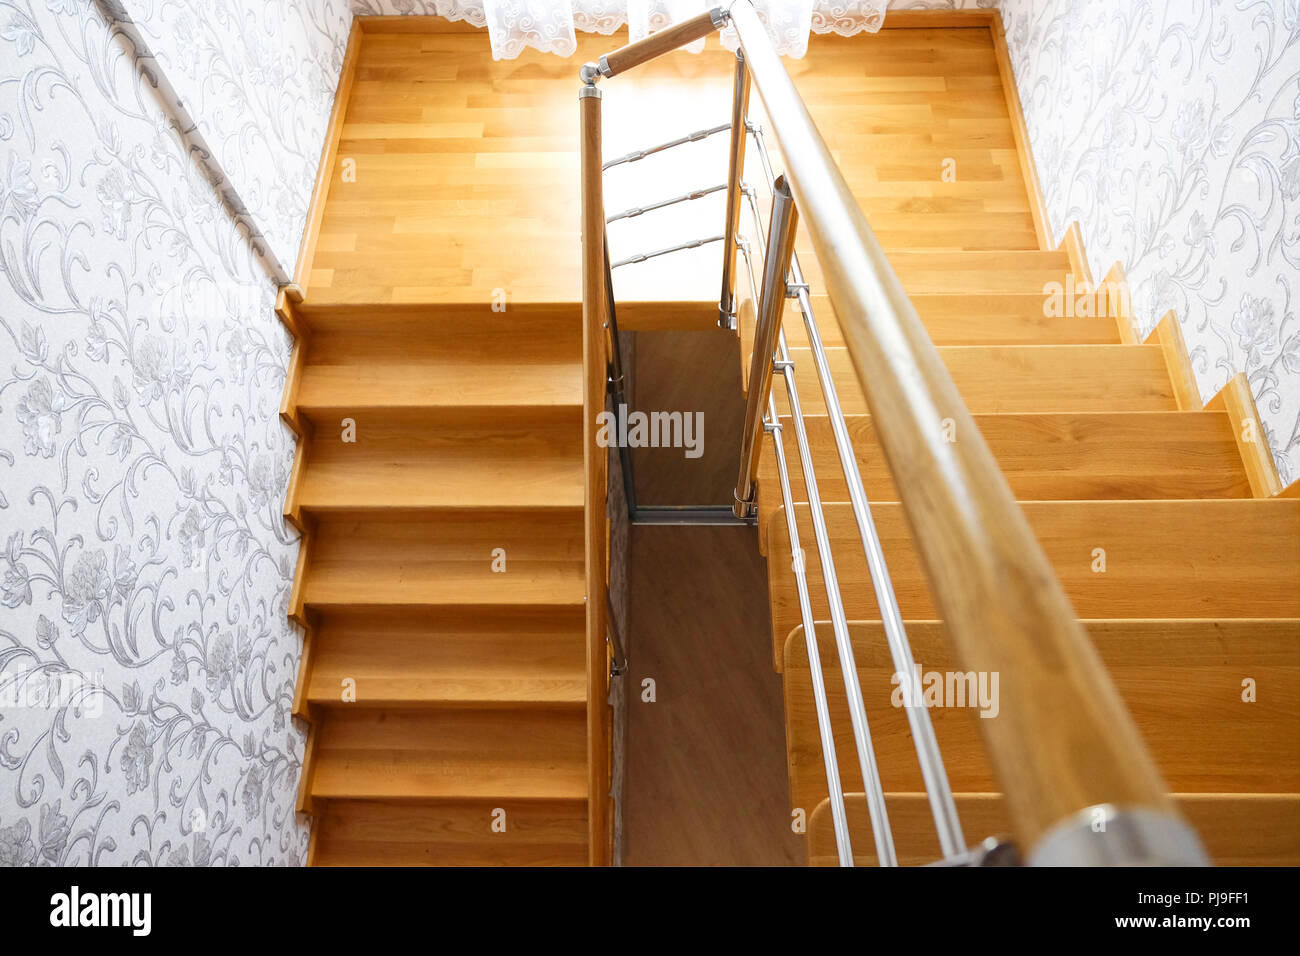 Wooden Staircase In The House. Modern Wooden Staircase Oak Steps. The View  From The Top.